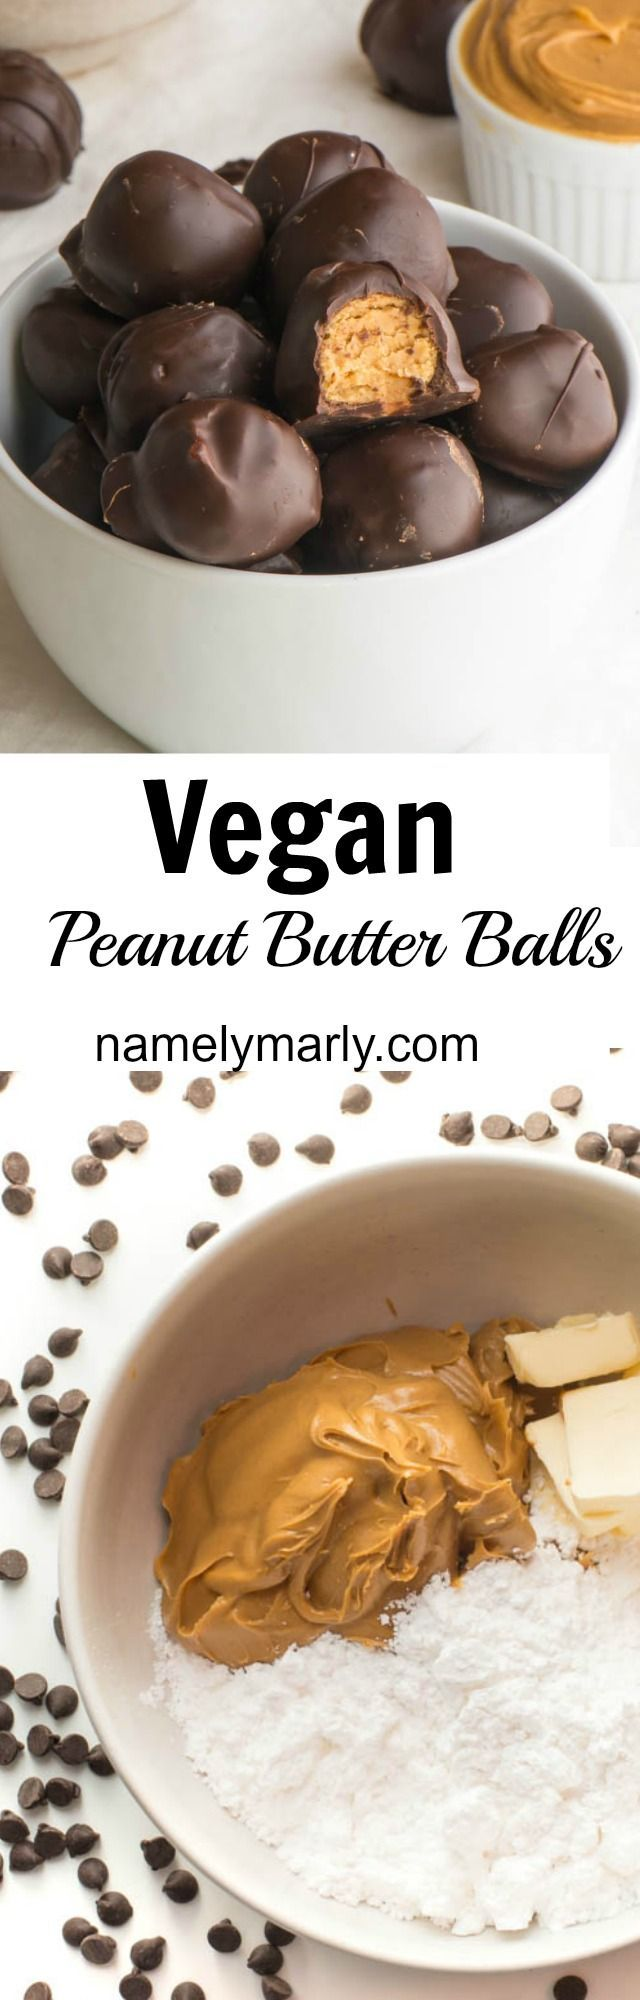 Who said vegan isn't fun? Say good-bye to cholesterol laden peanut butter balls, and say hello to these vegan peanut butter balls covered in chocolate.(Sweet Recipes)